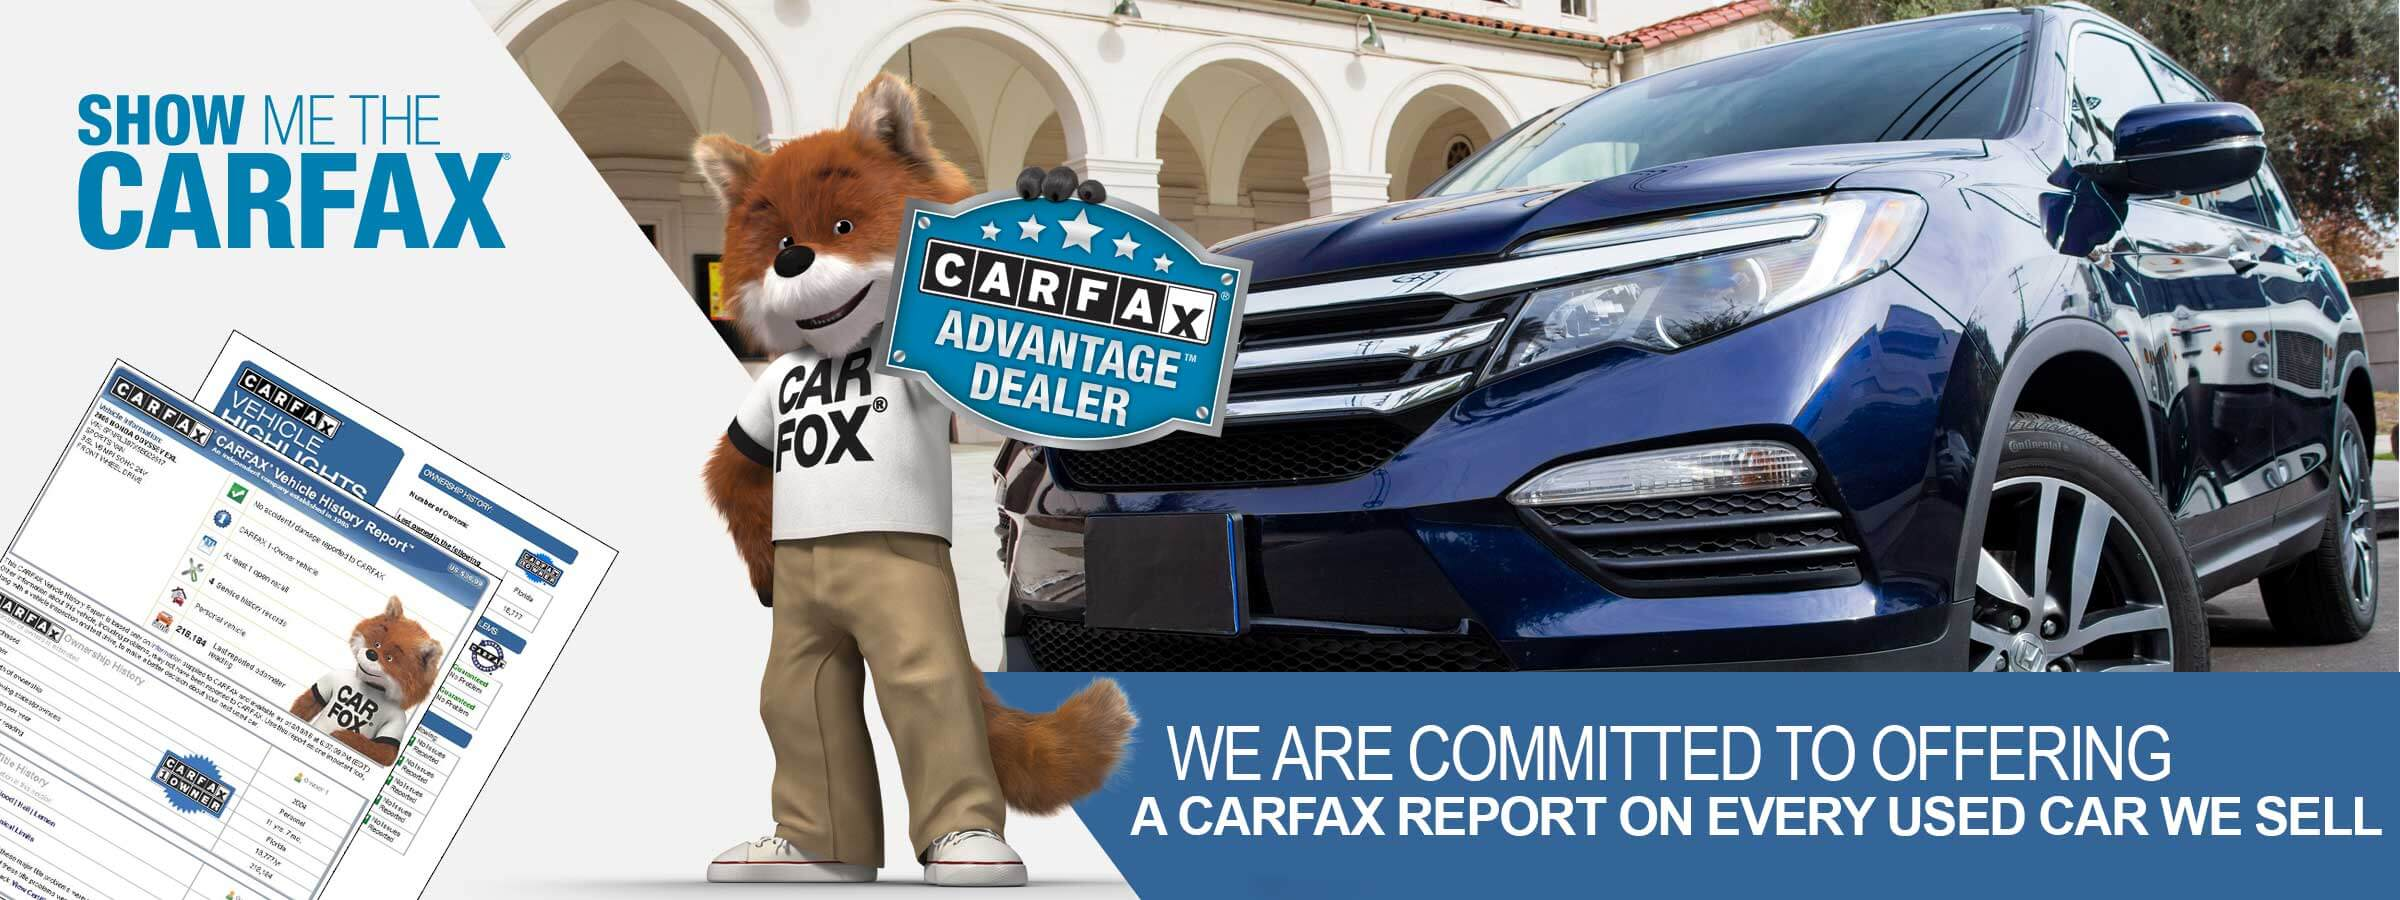 We provide free Carfax on every one of our used cars so you can buy with confidence